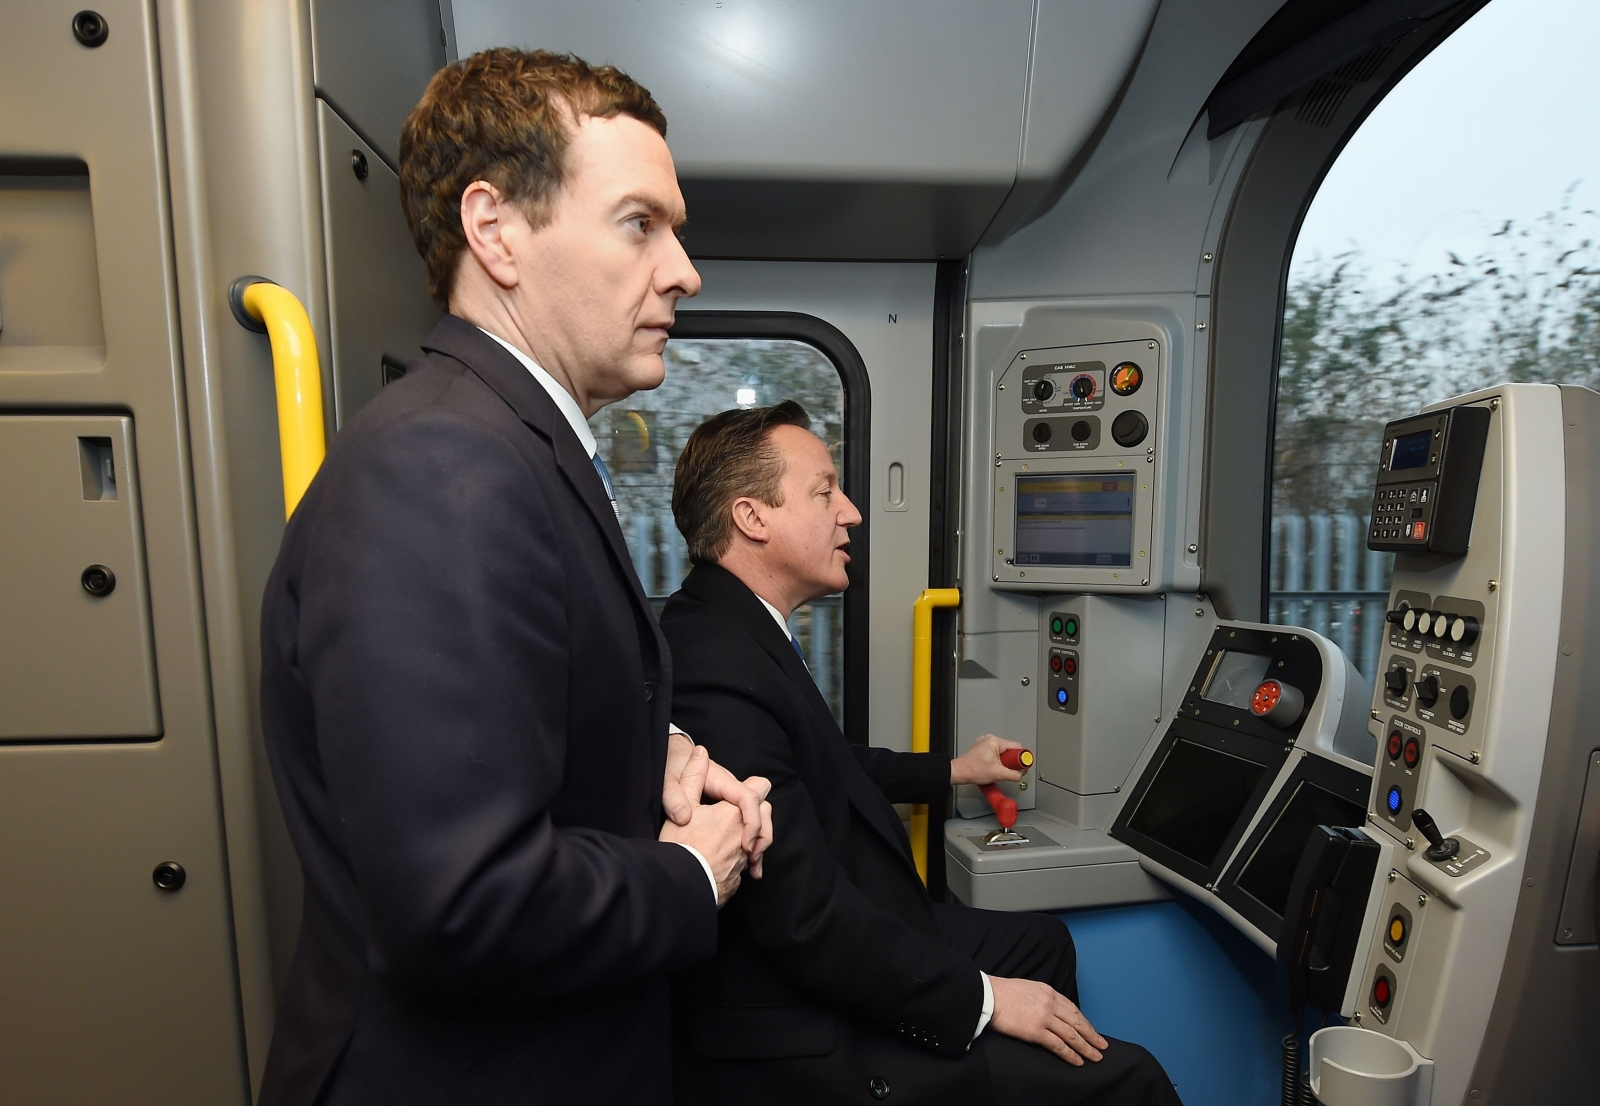 General Election 2015: David Cameron drives train to show country on track